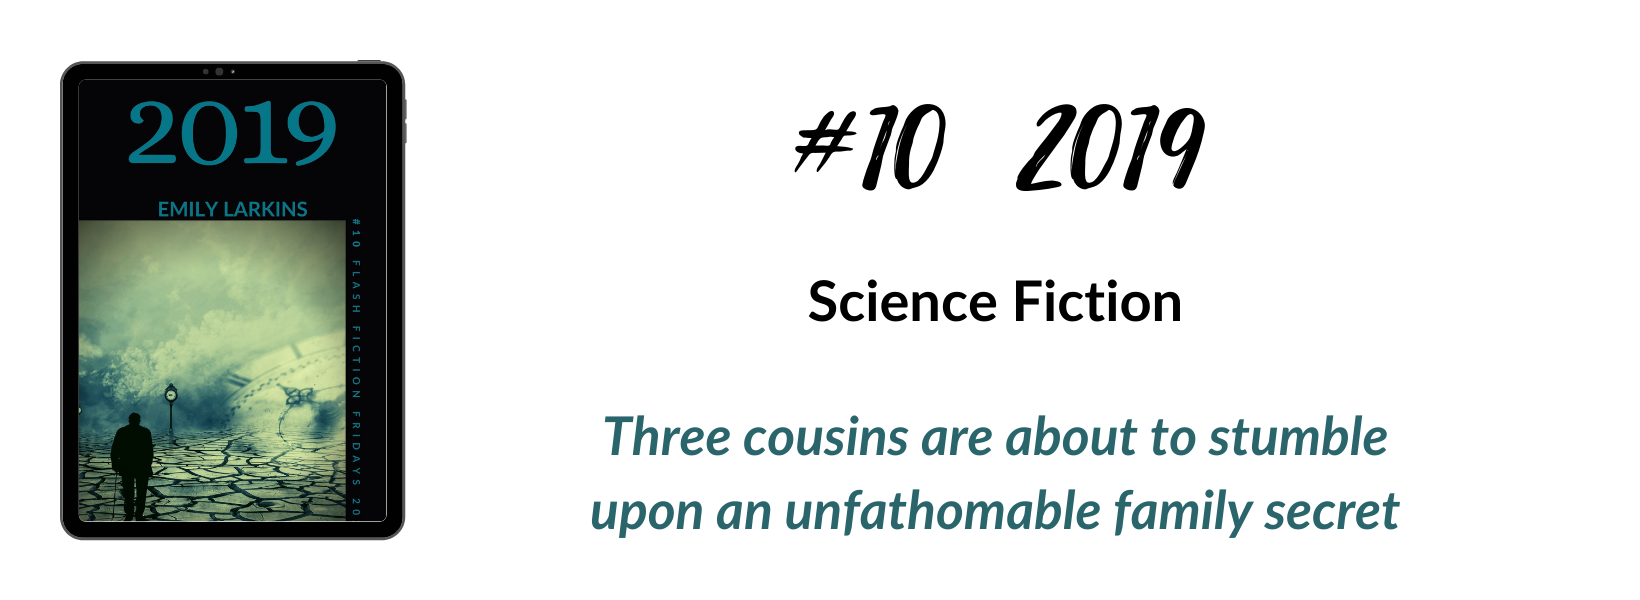 Book ten cover, science fiction story, 2019. Three cousins discover a secret that could end their family.